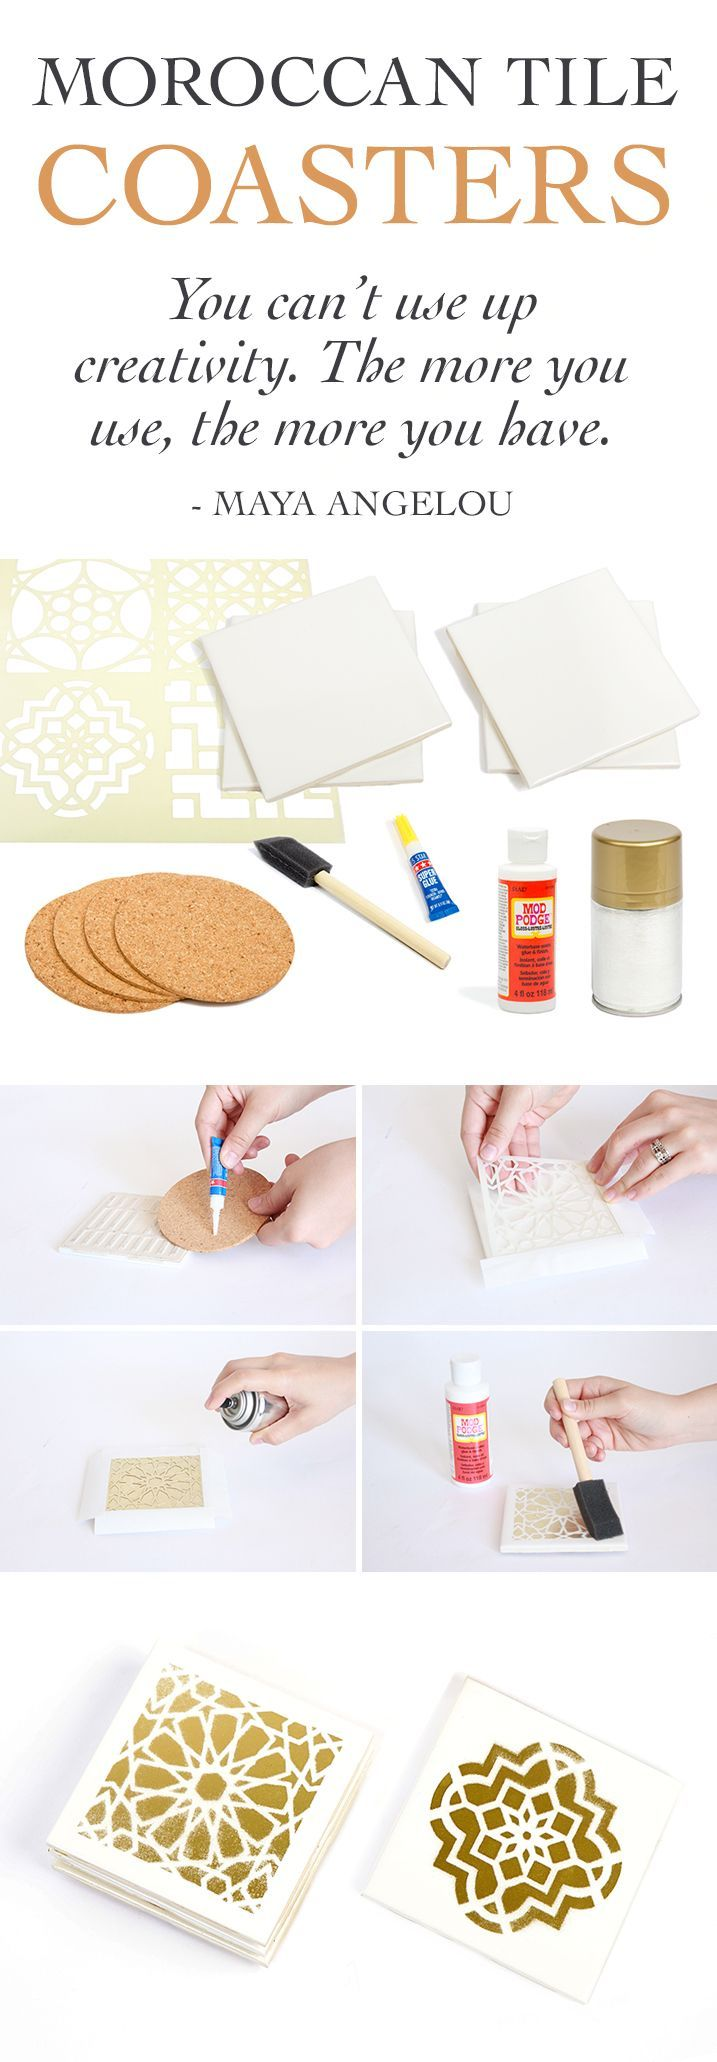 Create beautiful tiles with this DIY from #DarbySmart